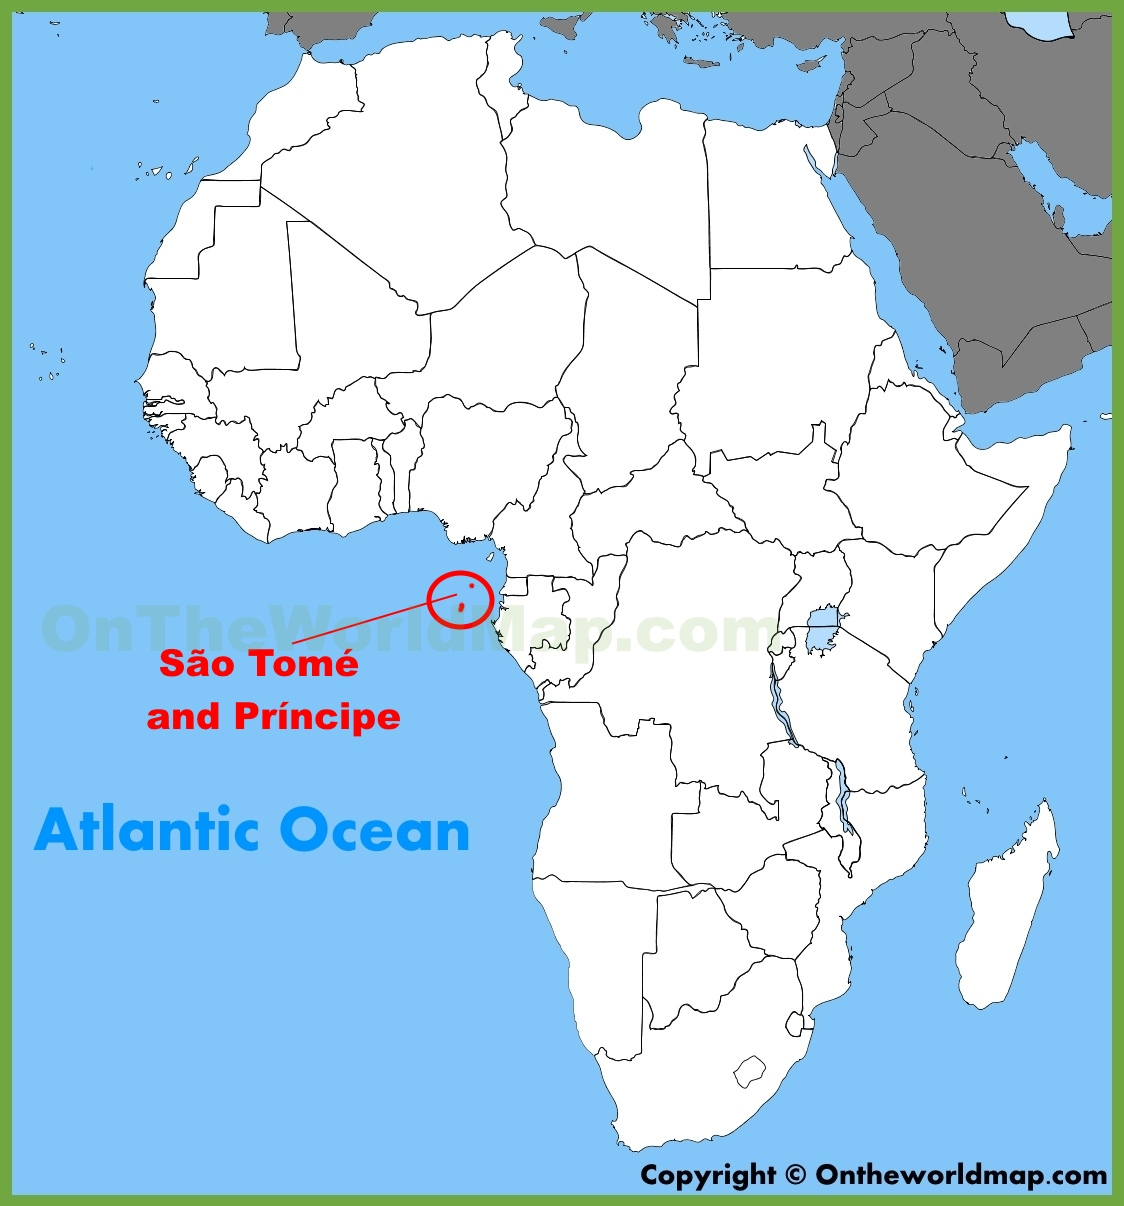 Sao Tome And Principe On Africa Map Sao Tome and Principe location on the Africa map